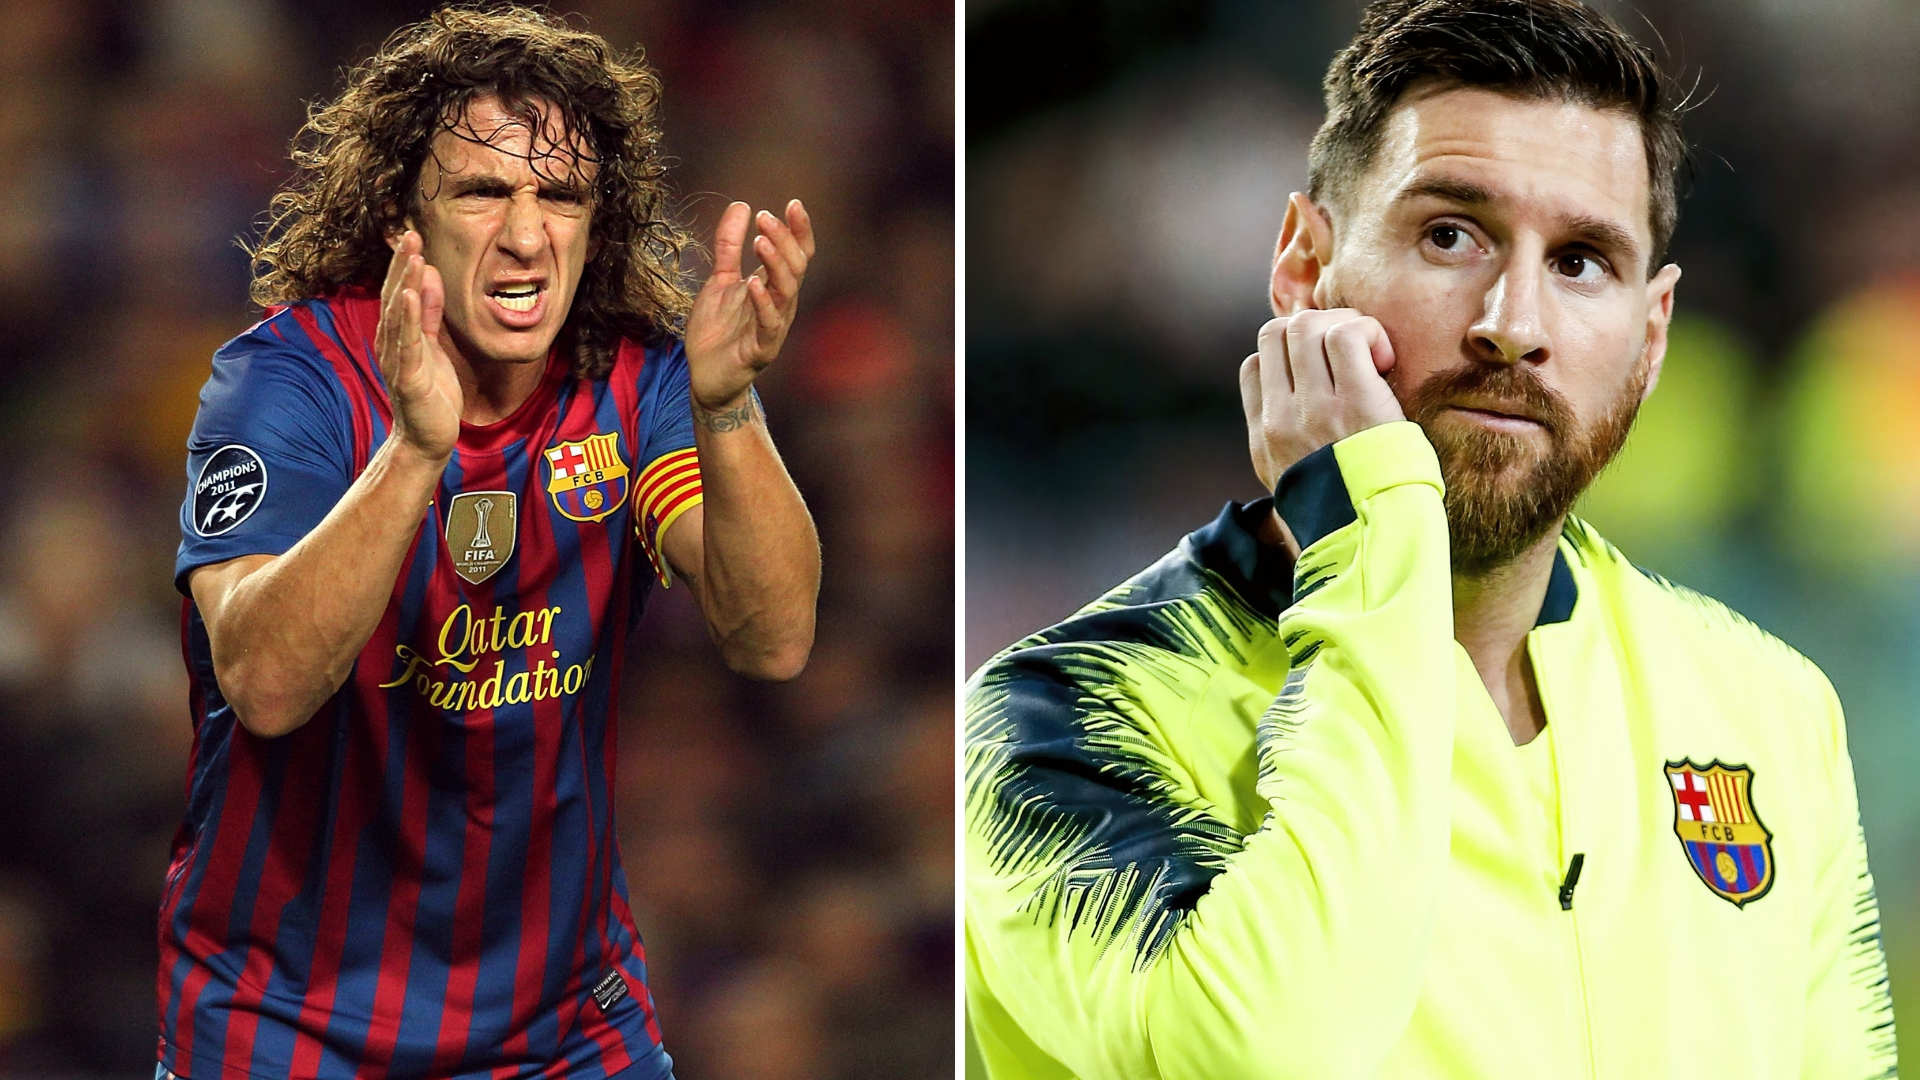 Carles Puyol's Brilliant Dig At Ballon d'Or Result After Lionel Messi Brace